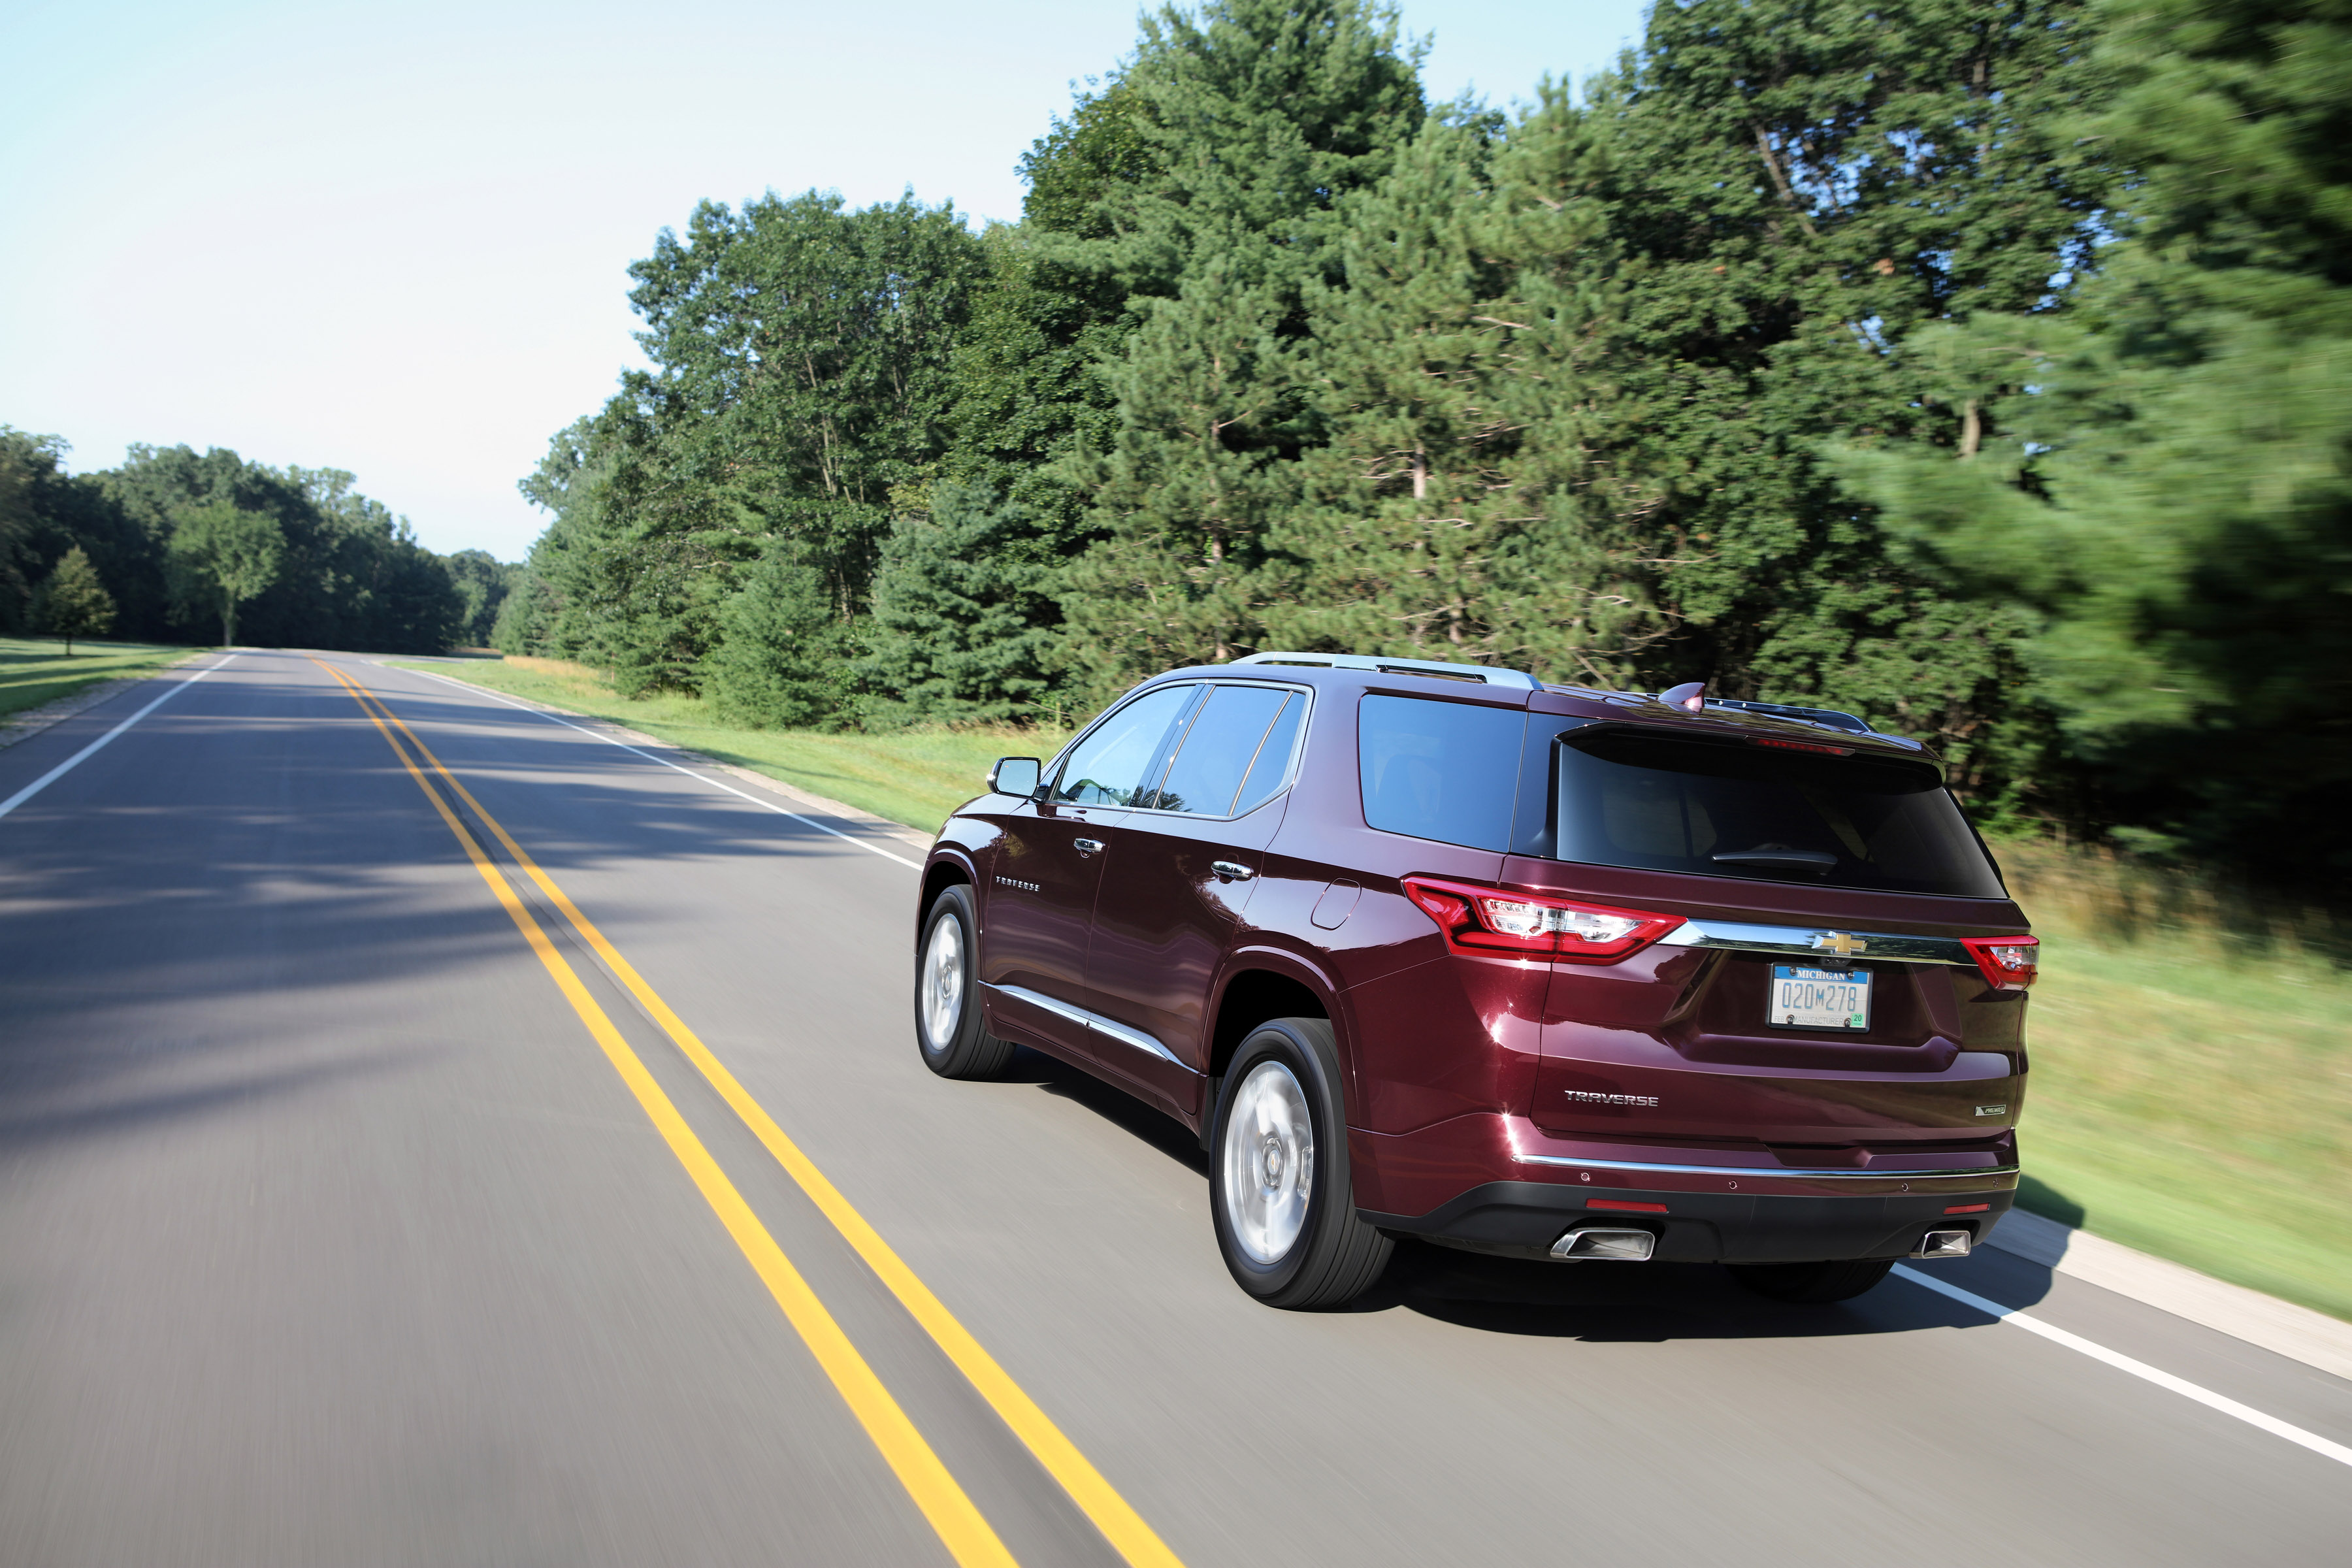 Manufacturer photo: Chevrolet introduces the all-new 2018 Traverse wrapped in bold and refined styling